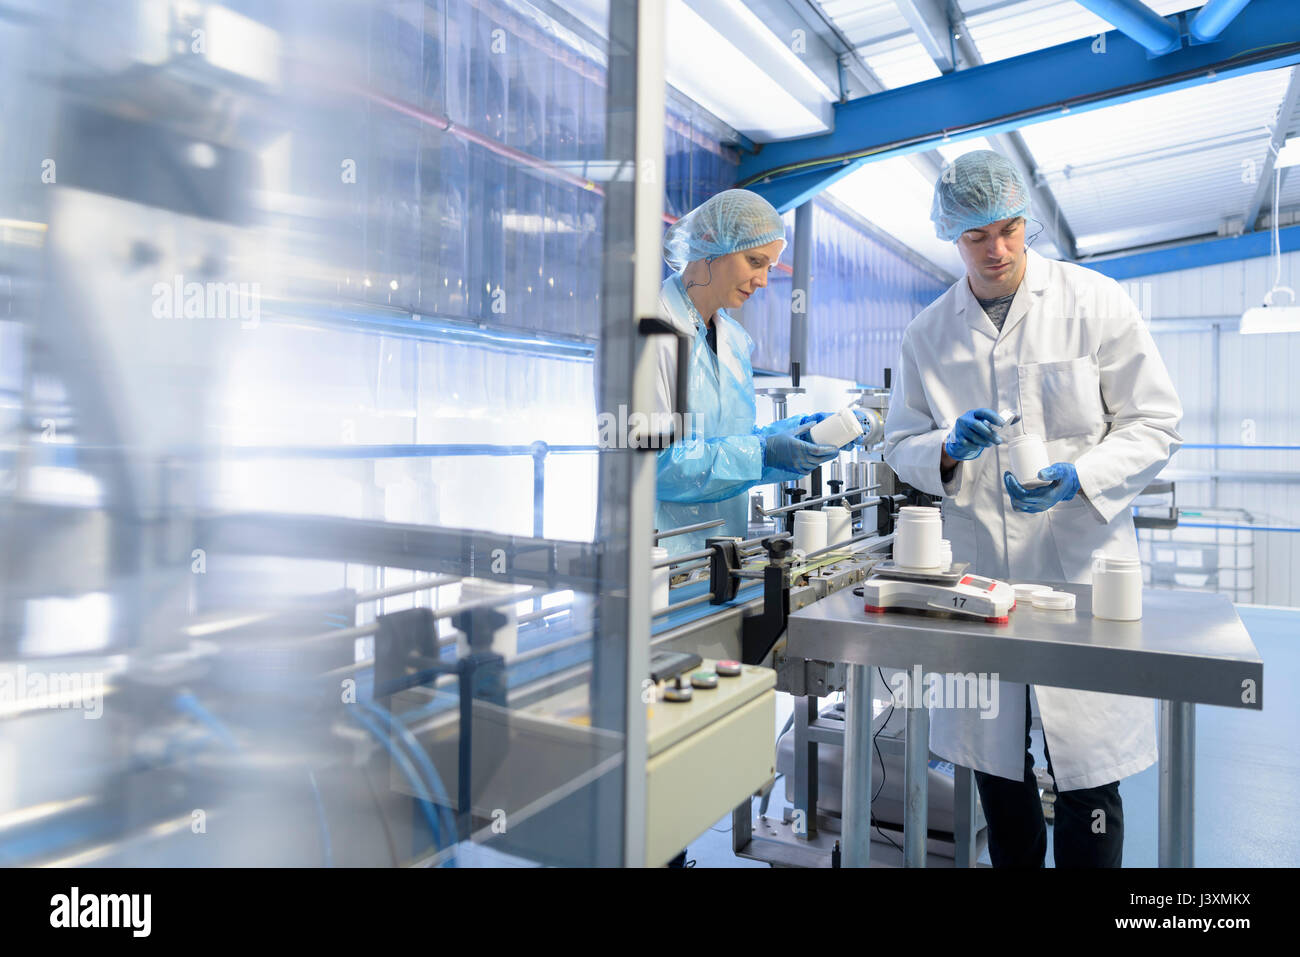 Workers on production line in pharmaceutical factory - Stock Image